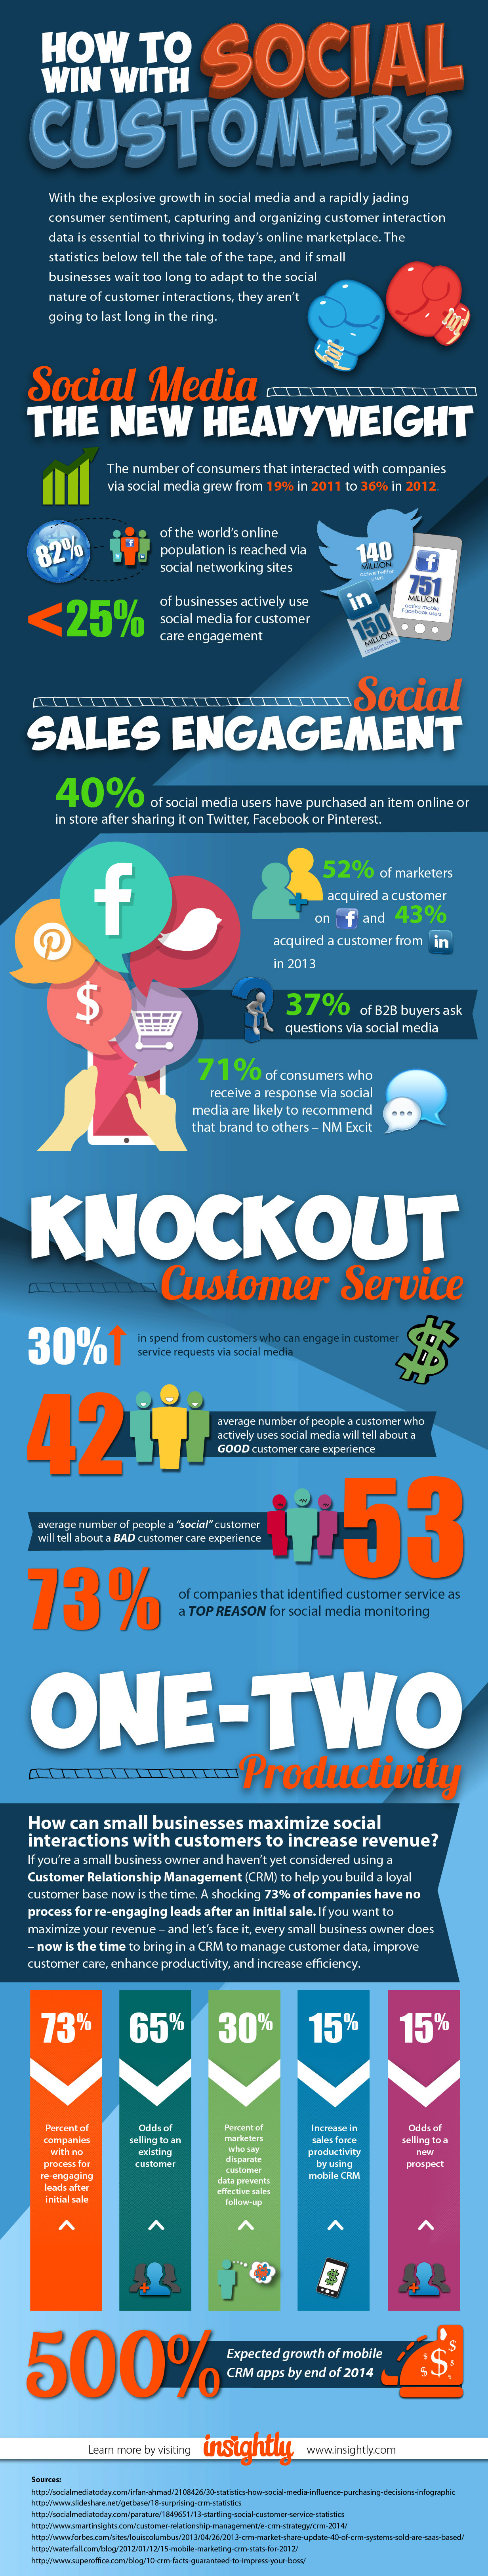 How to Win With Social Customers